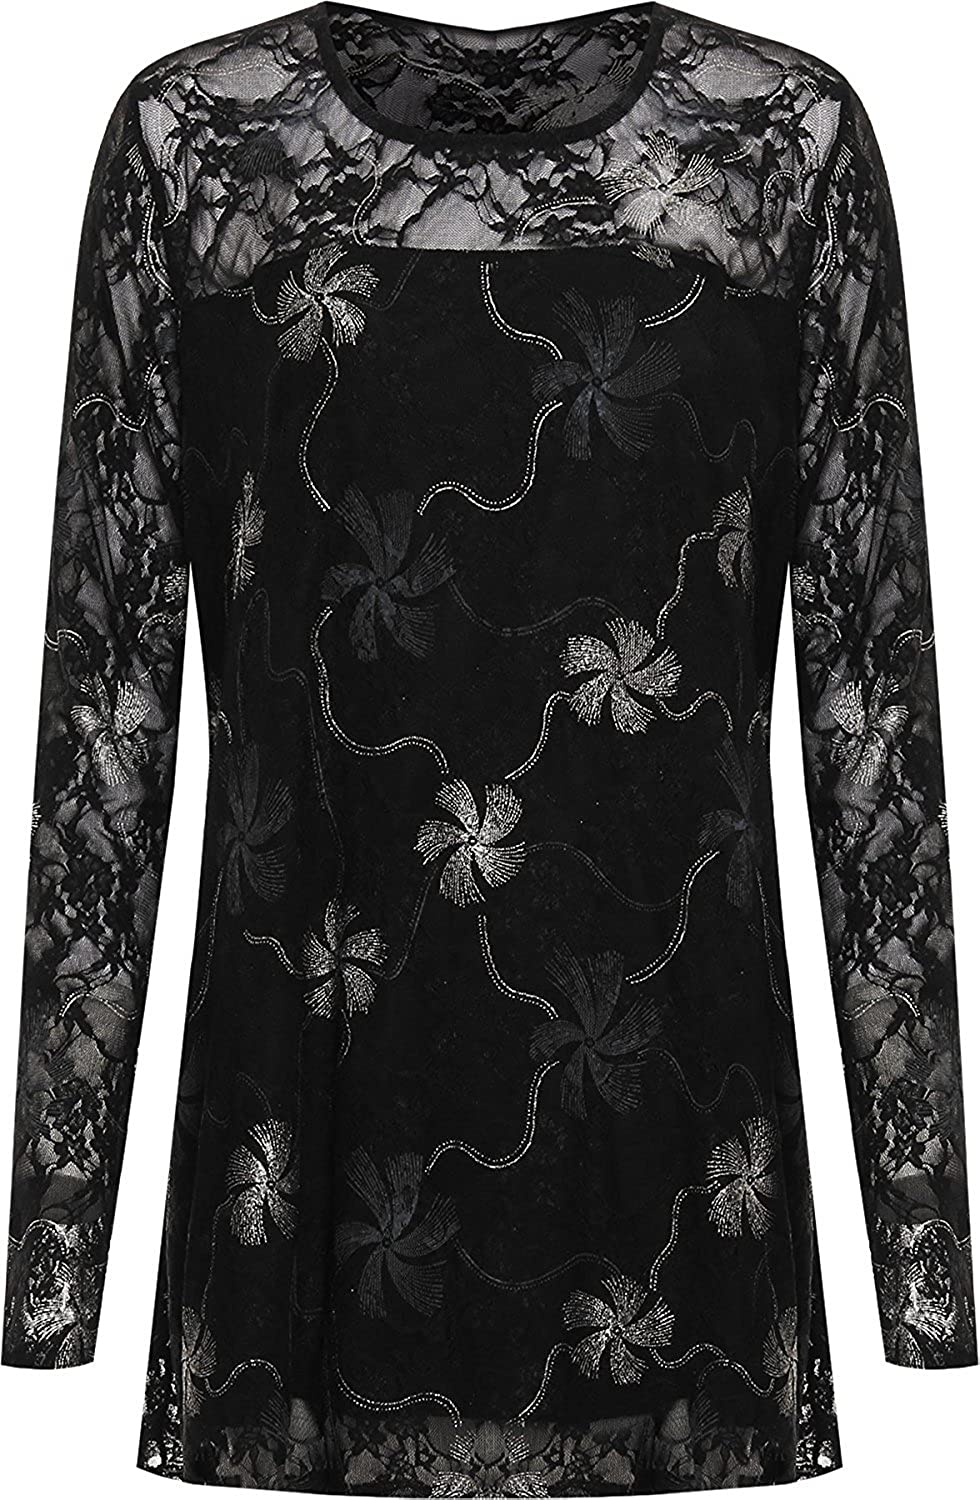 F4S/® Womens Plus Size Gold//Silver Glitter Floral Lurex Lined Print Long Sleeve Ladies Party Top 16-28